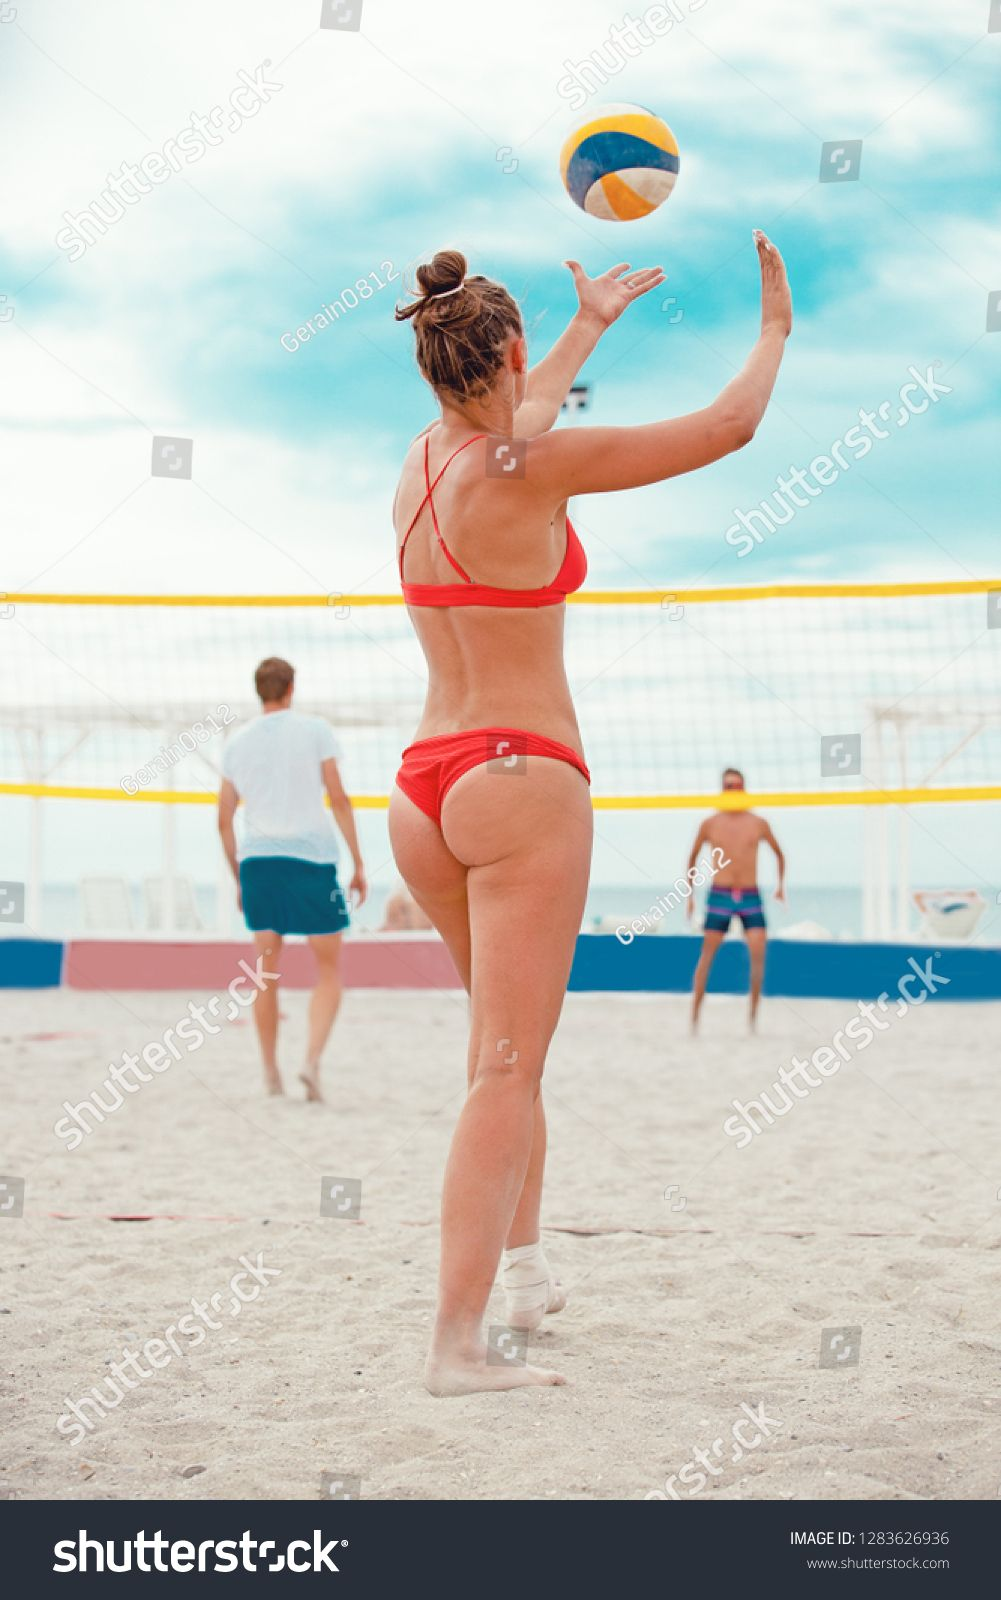 Volleyball Beach Player Is A Female Athlete Volleyball Player Getting Ready To Serve The Ball On The Beach Ad Female Athletes Volleyball Volleyball Players